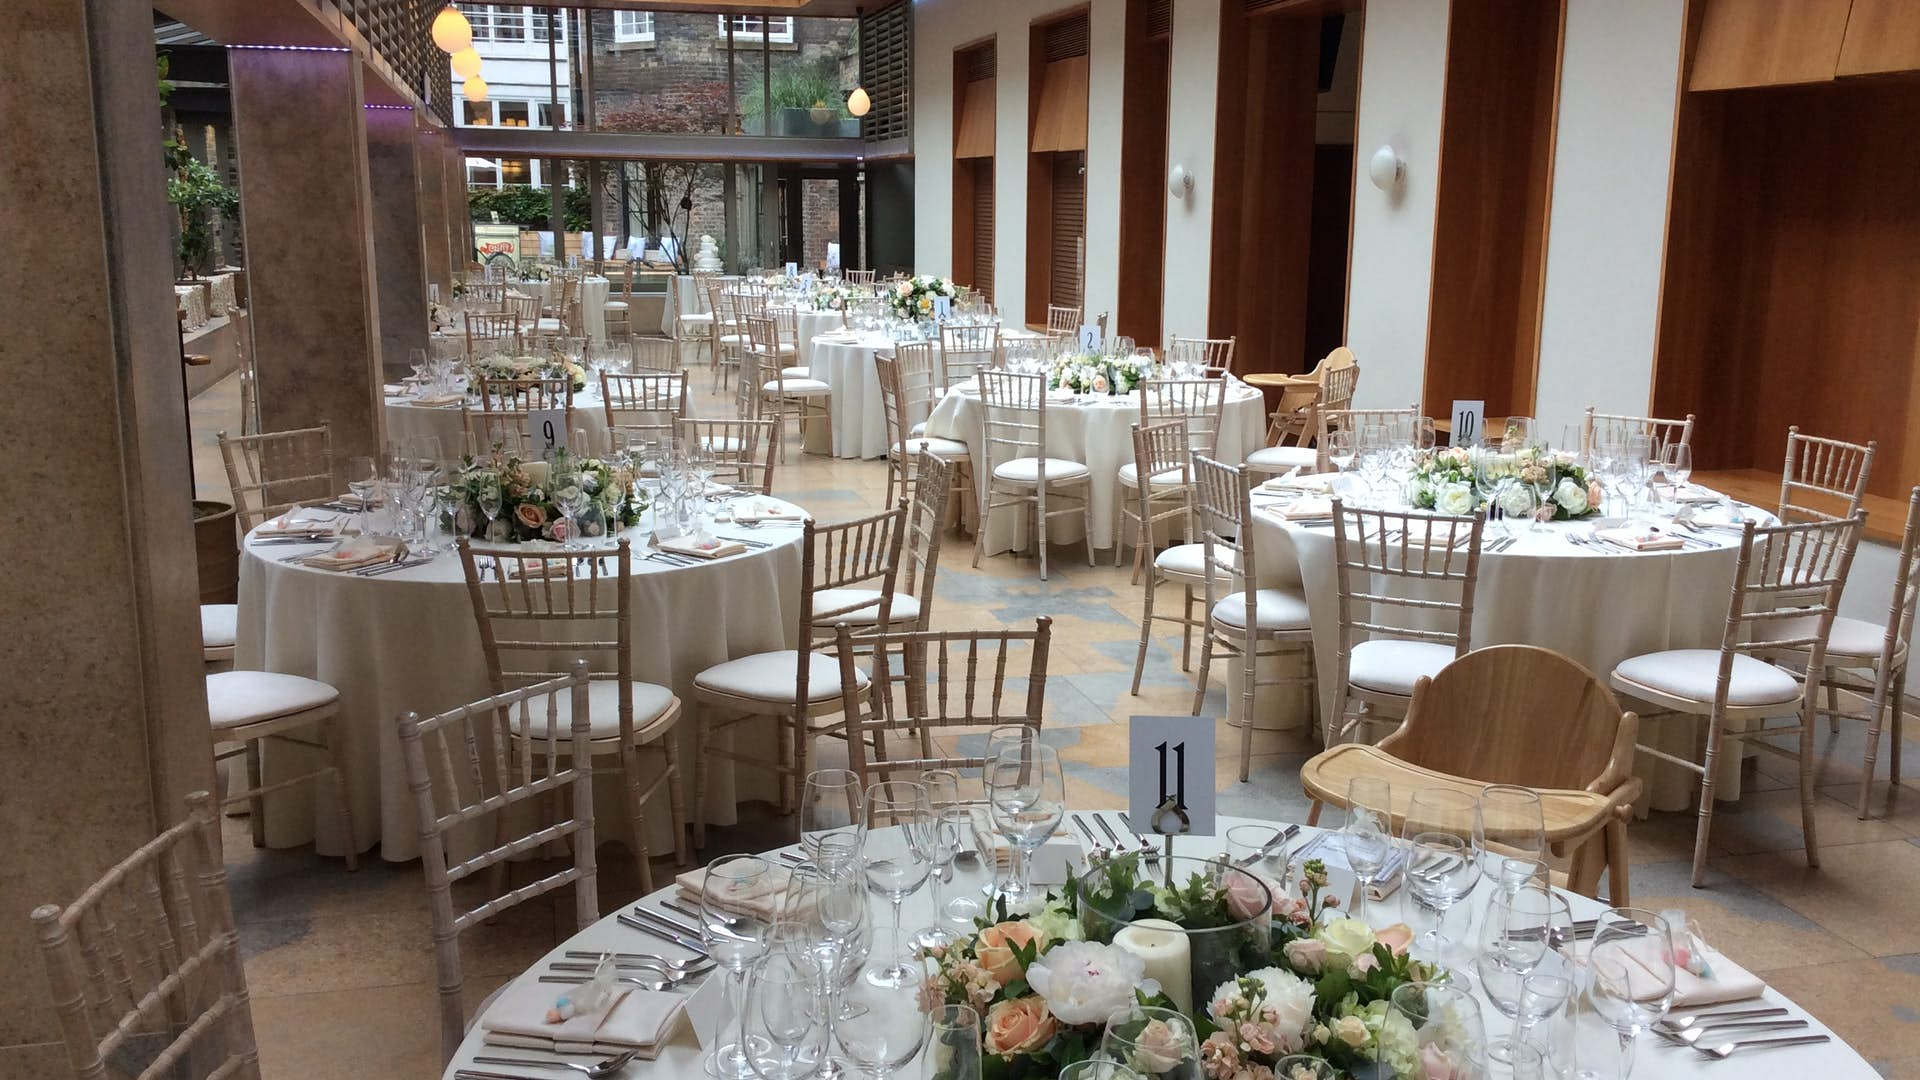 Orangery Weddings Hire No11 Cavendish Square